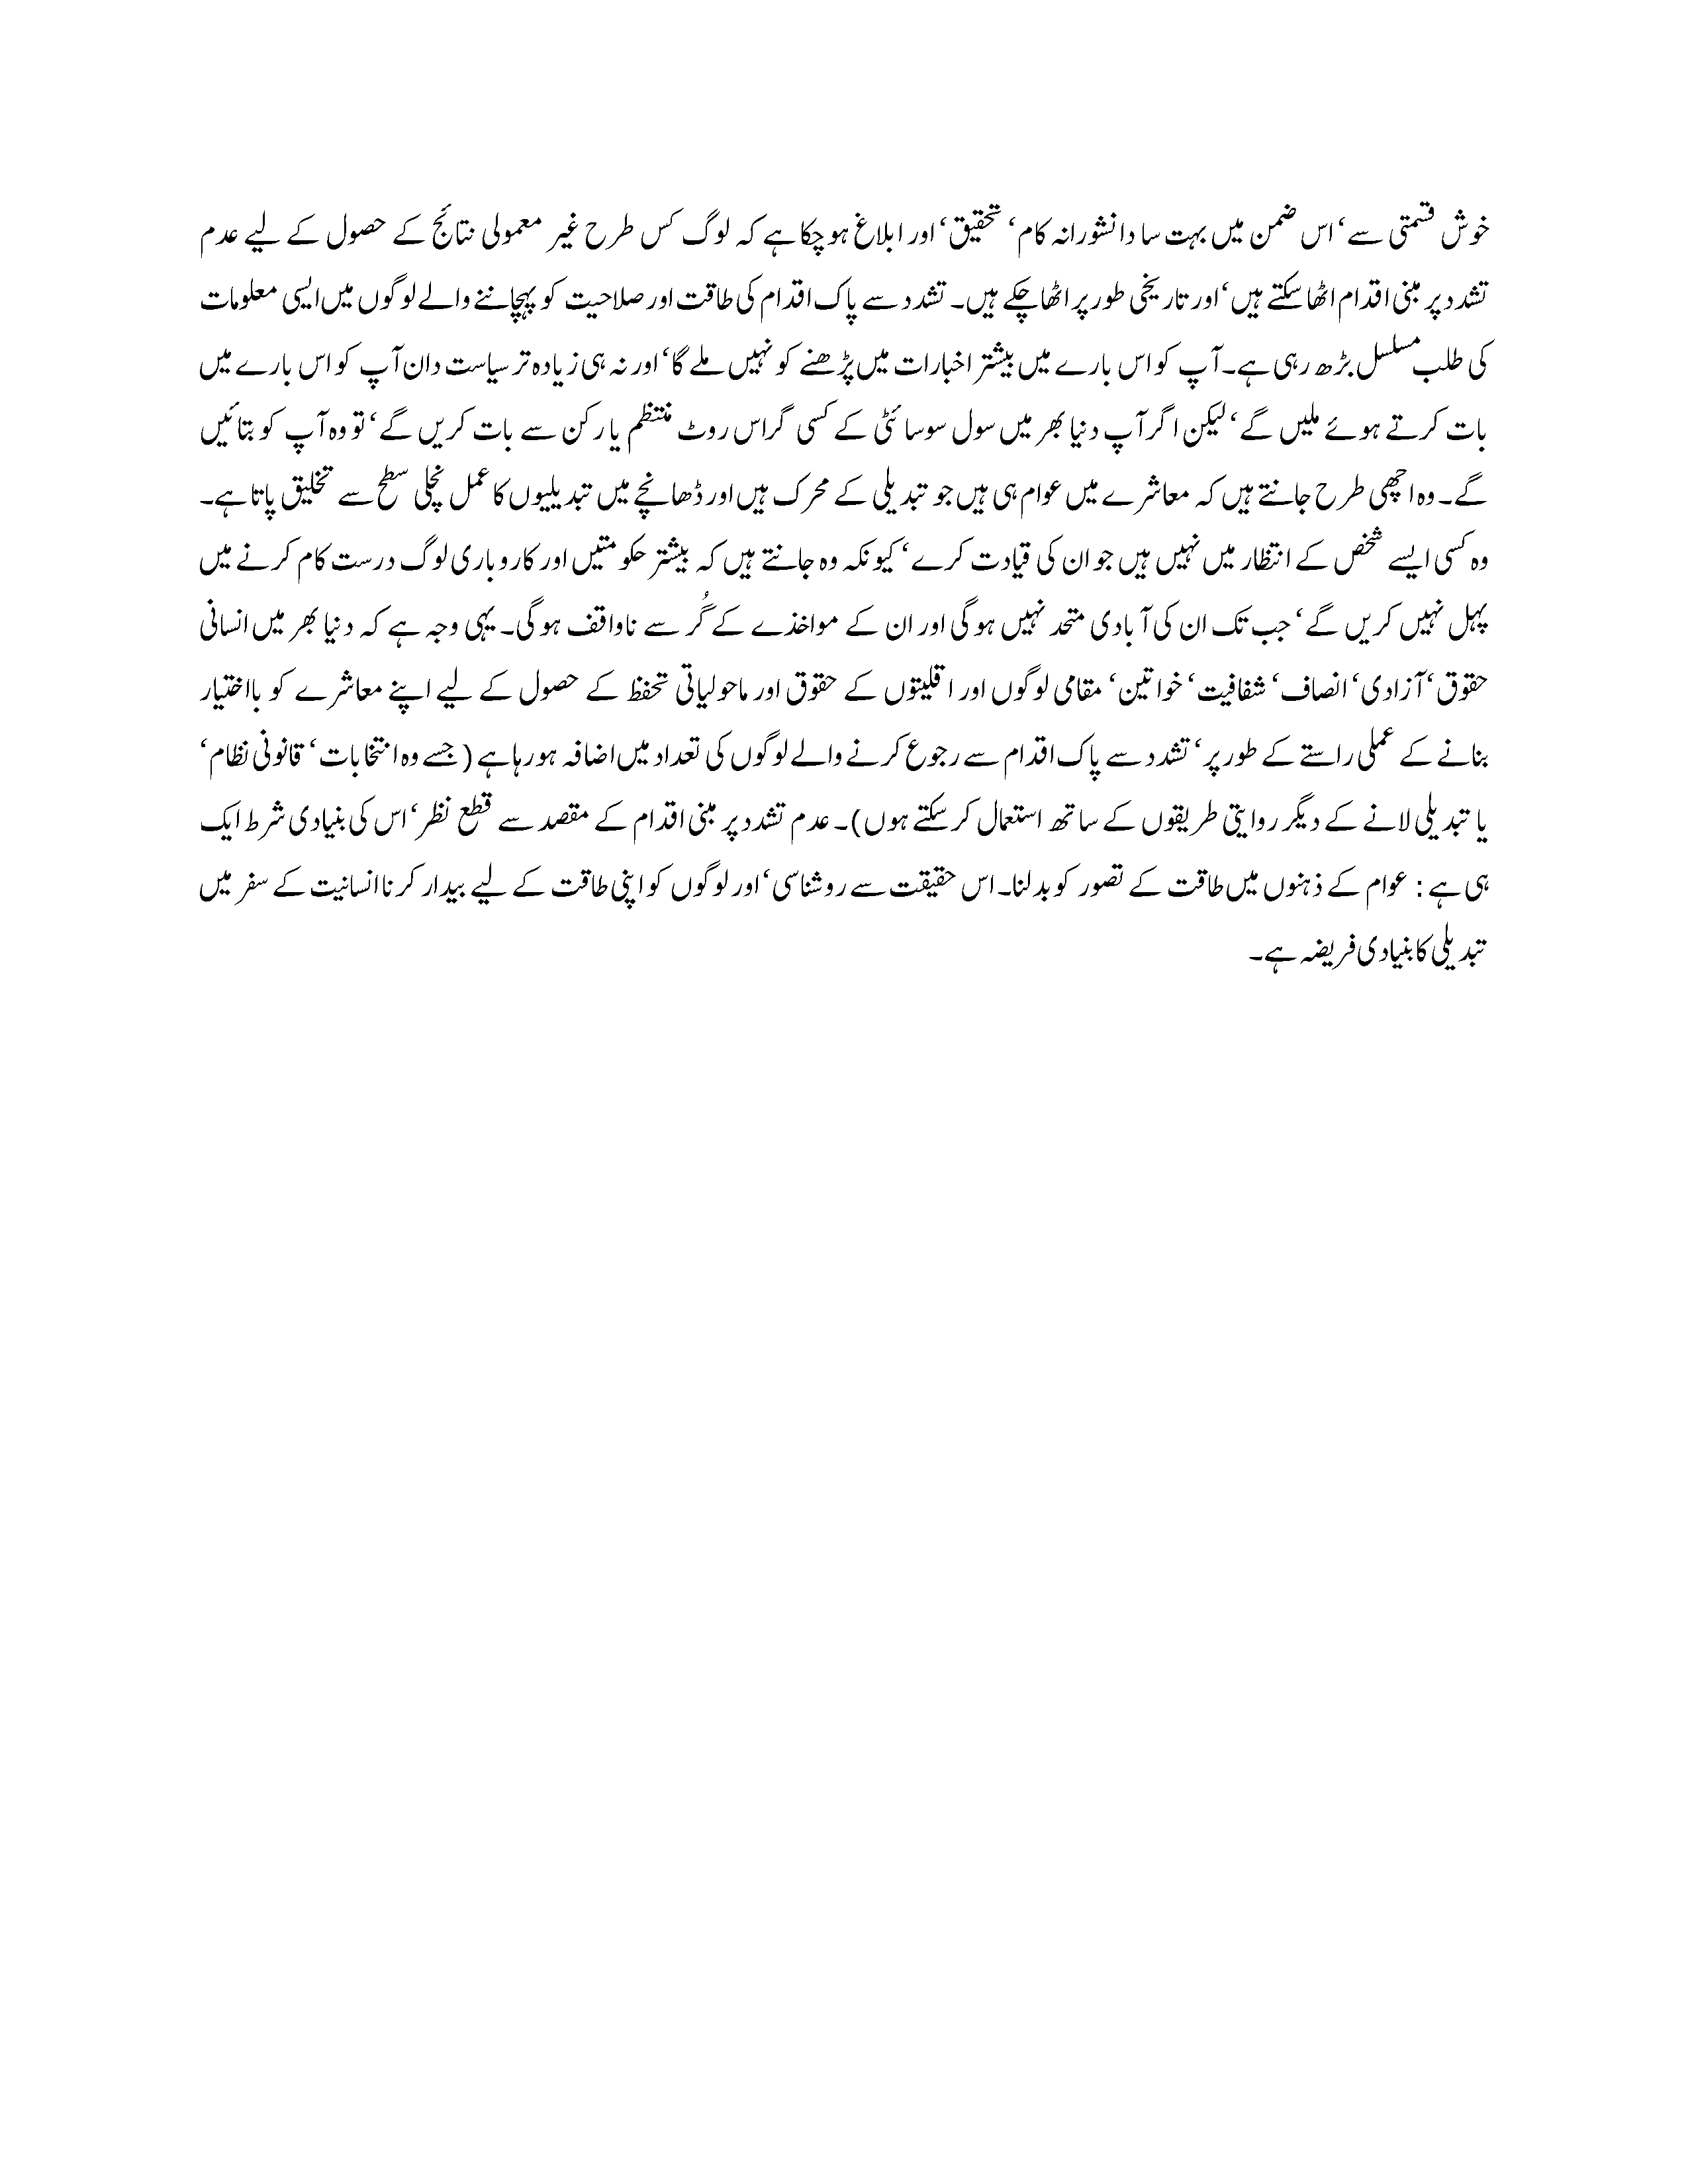 Agents of Change and Nonviolent Action (Urdu)